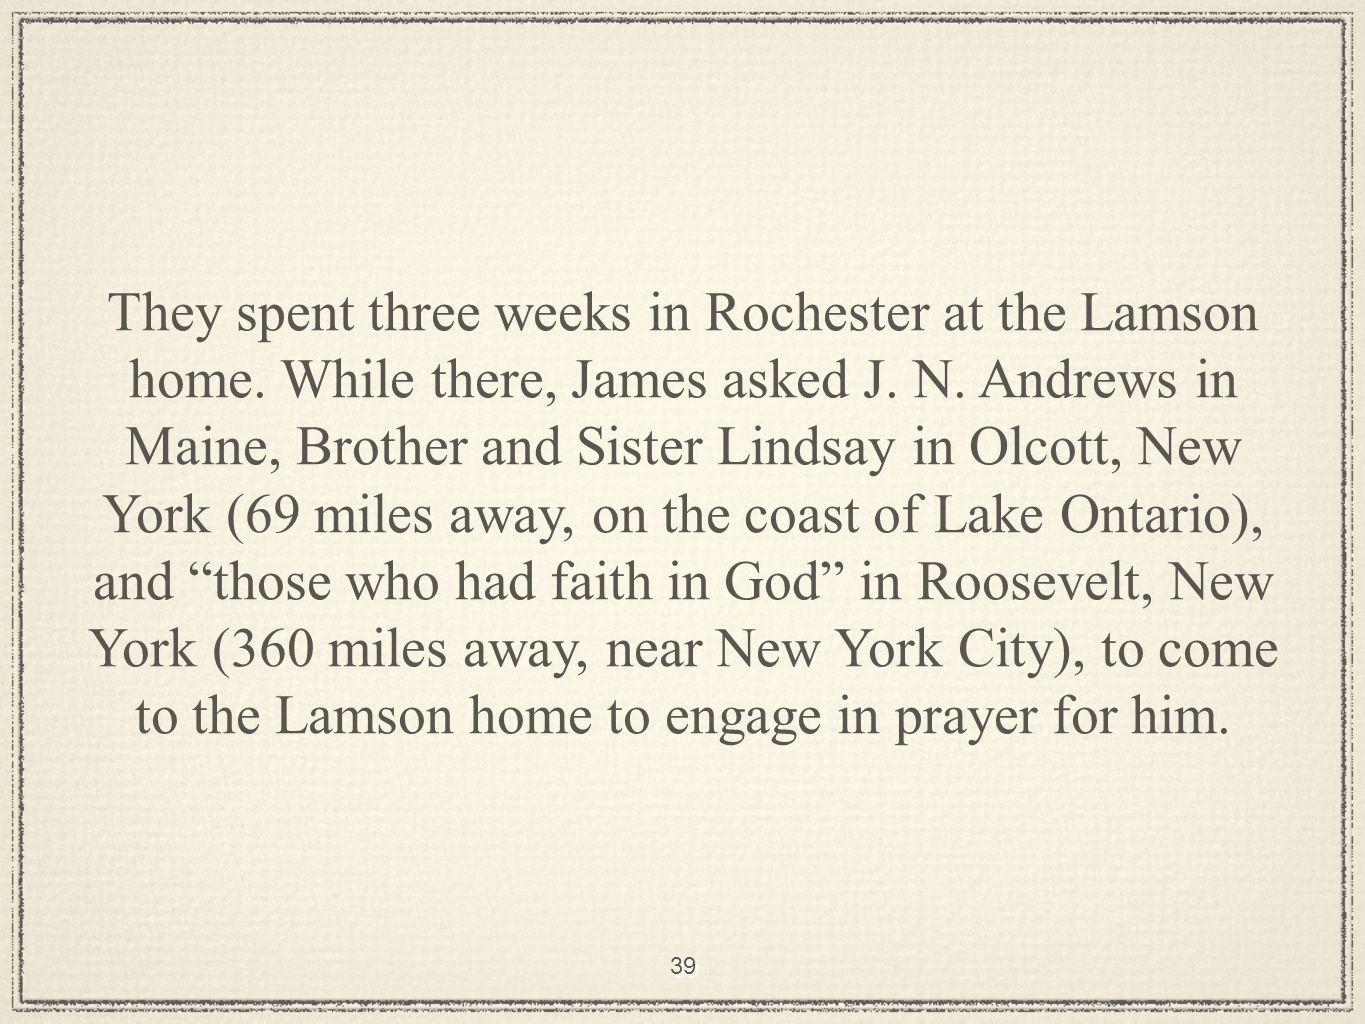 39 They spent three weeks in Rochester at the Lamson home.